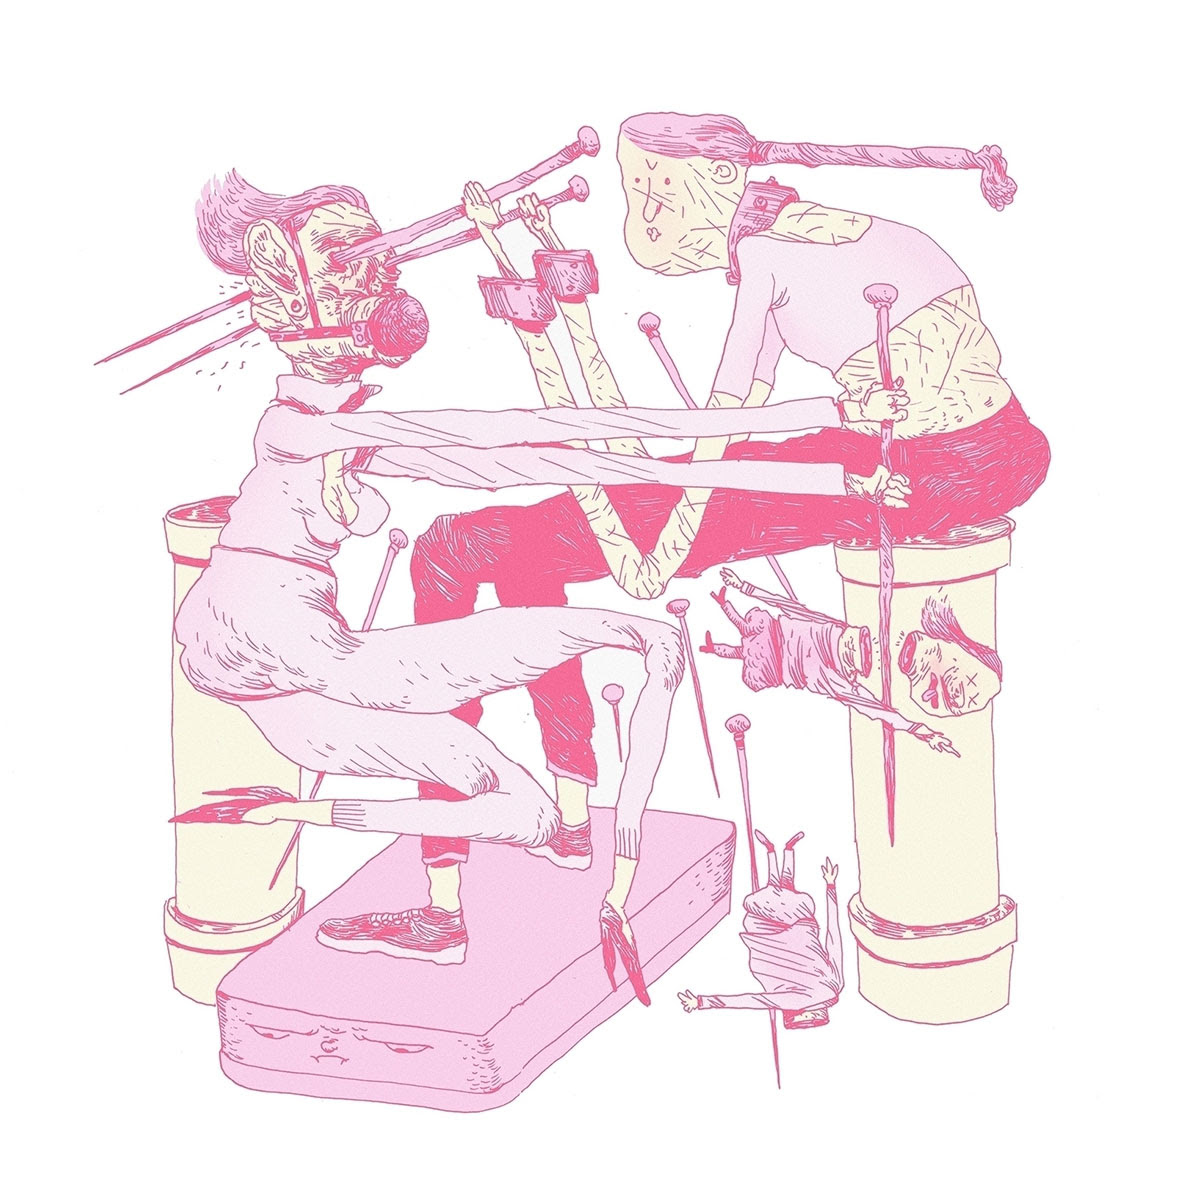 illustration of people fighting with knitting needles